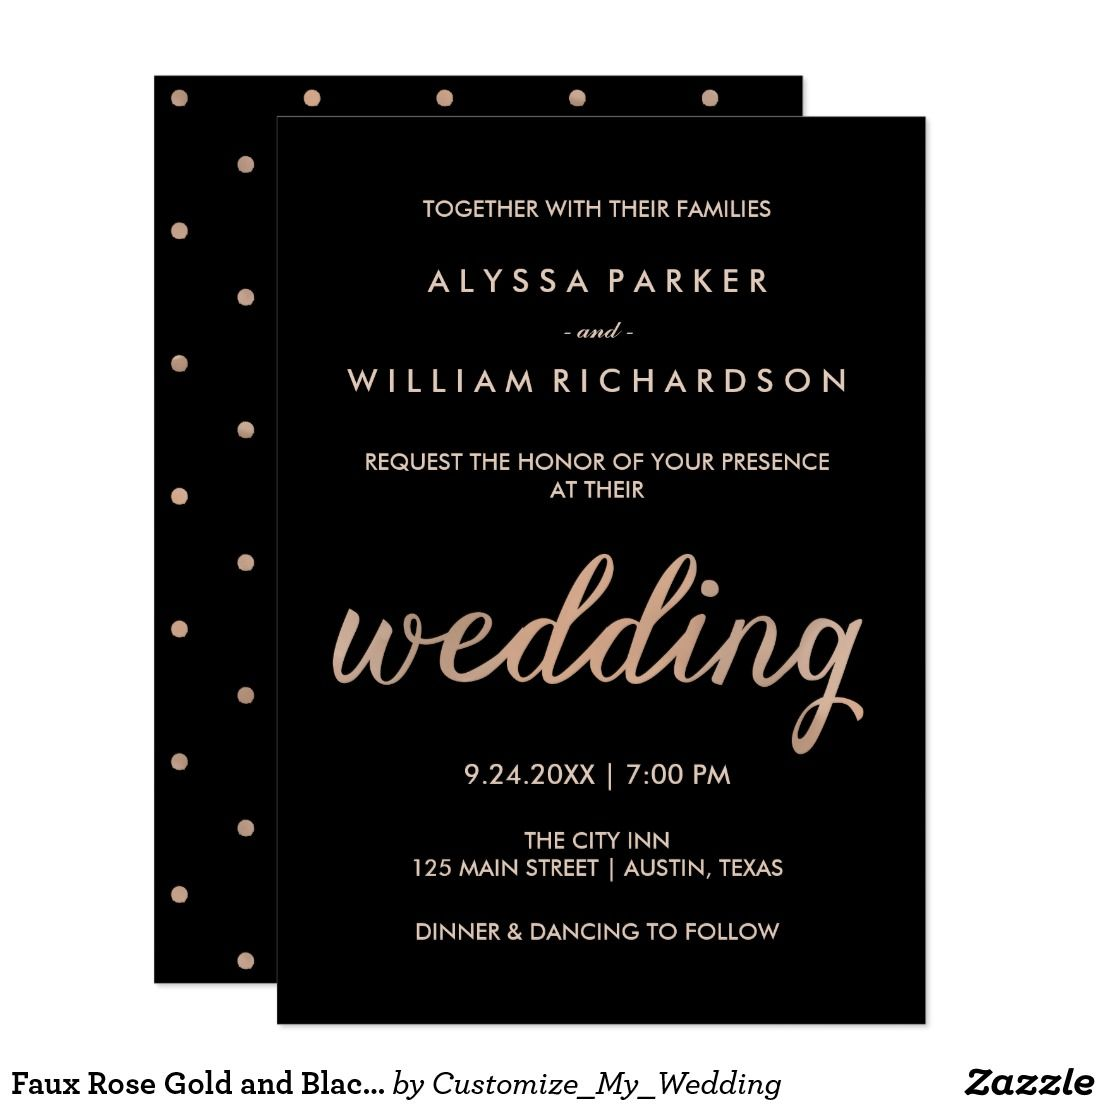 Faux Rose Gold And Black With Polka Dots Wedding Card These Stylish